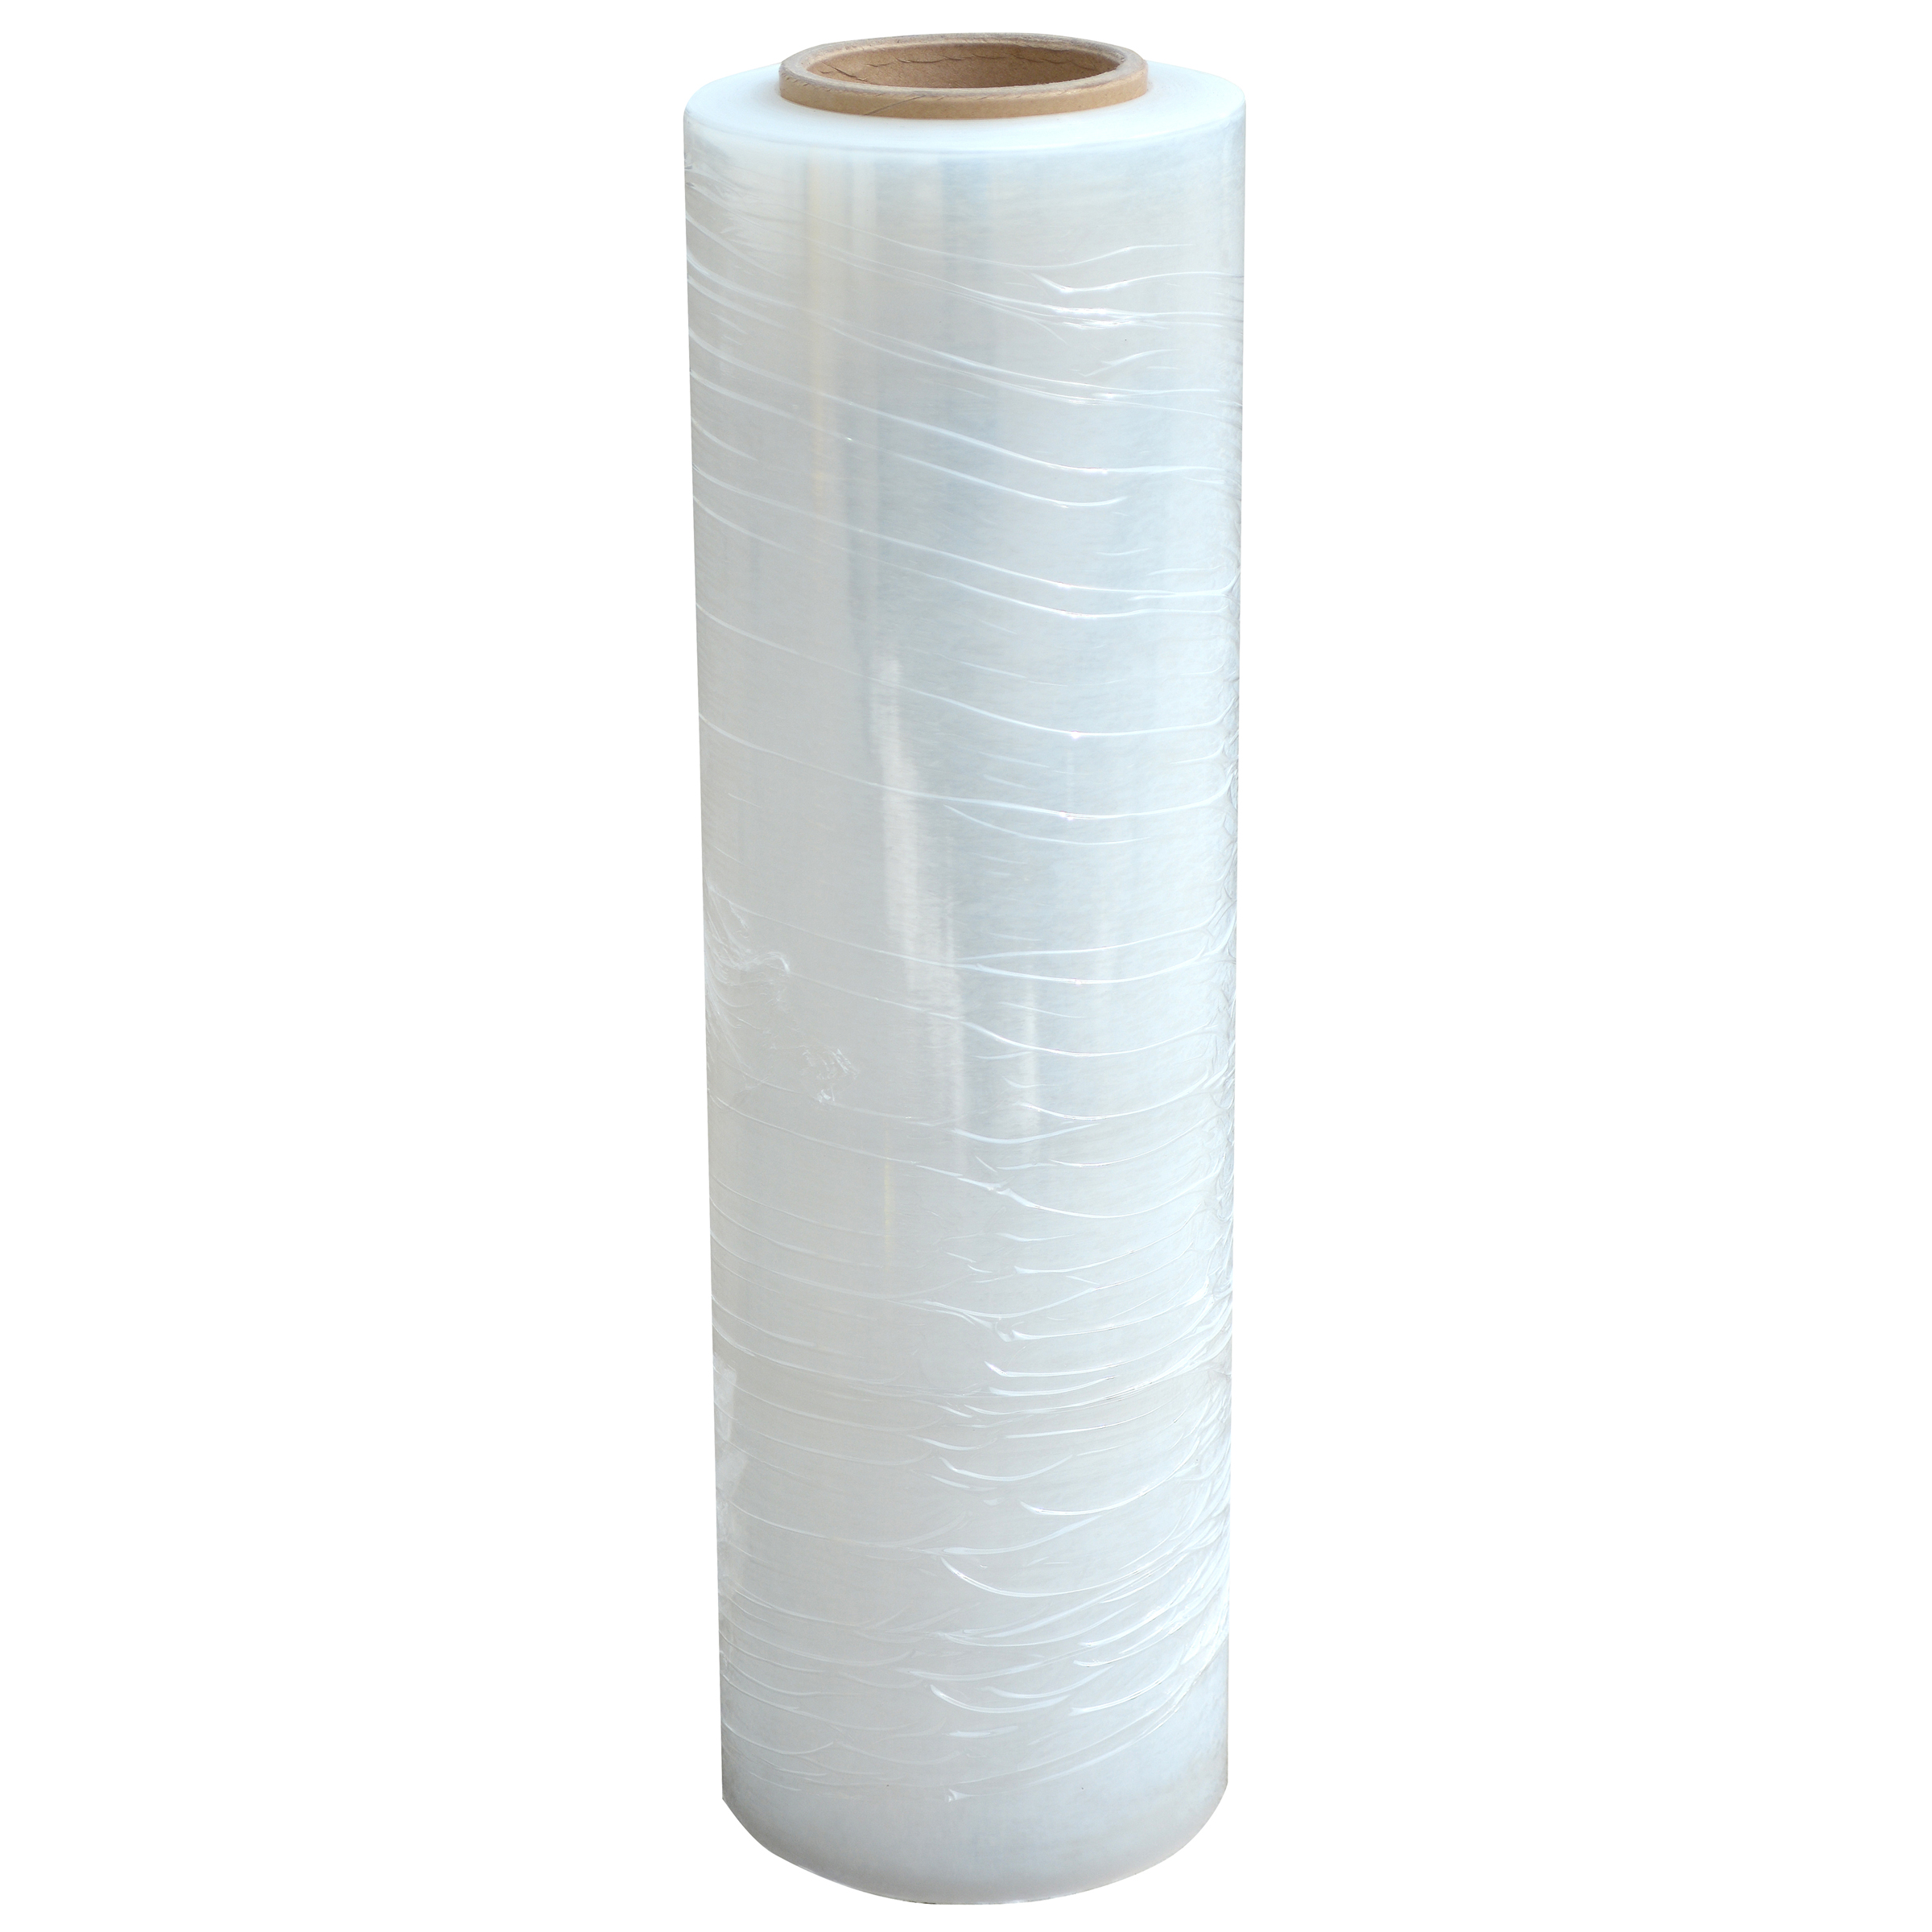 Stretch Wrap Roll - 18 in. x 1500 ft.